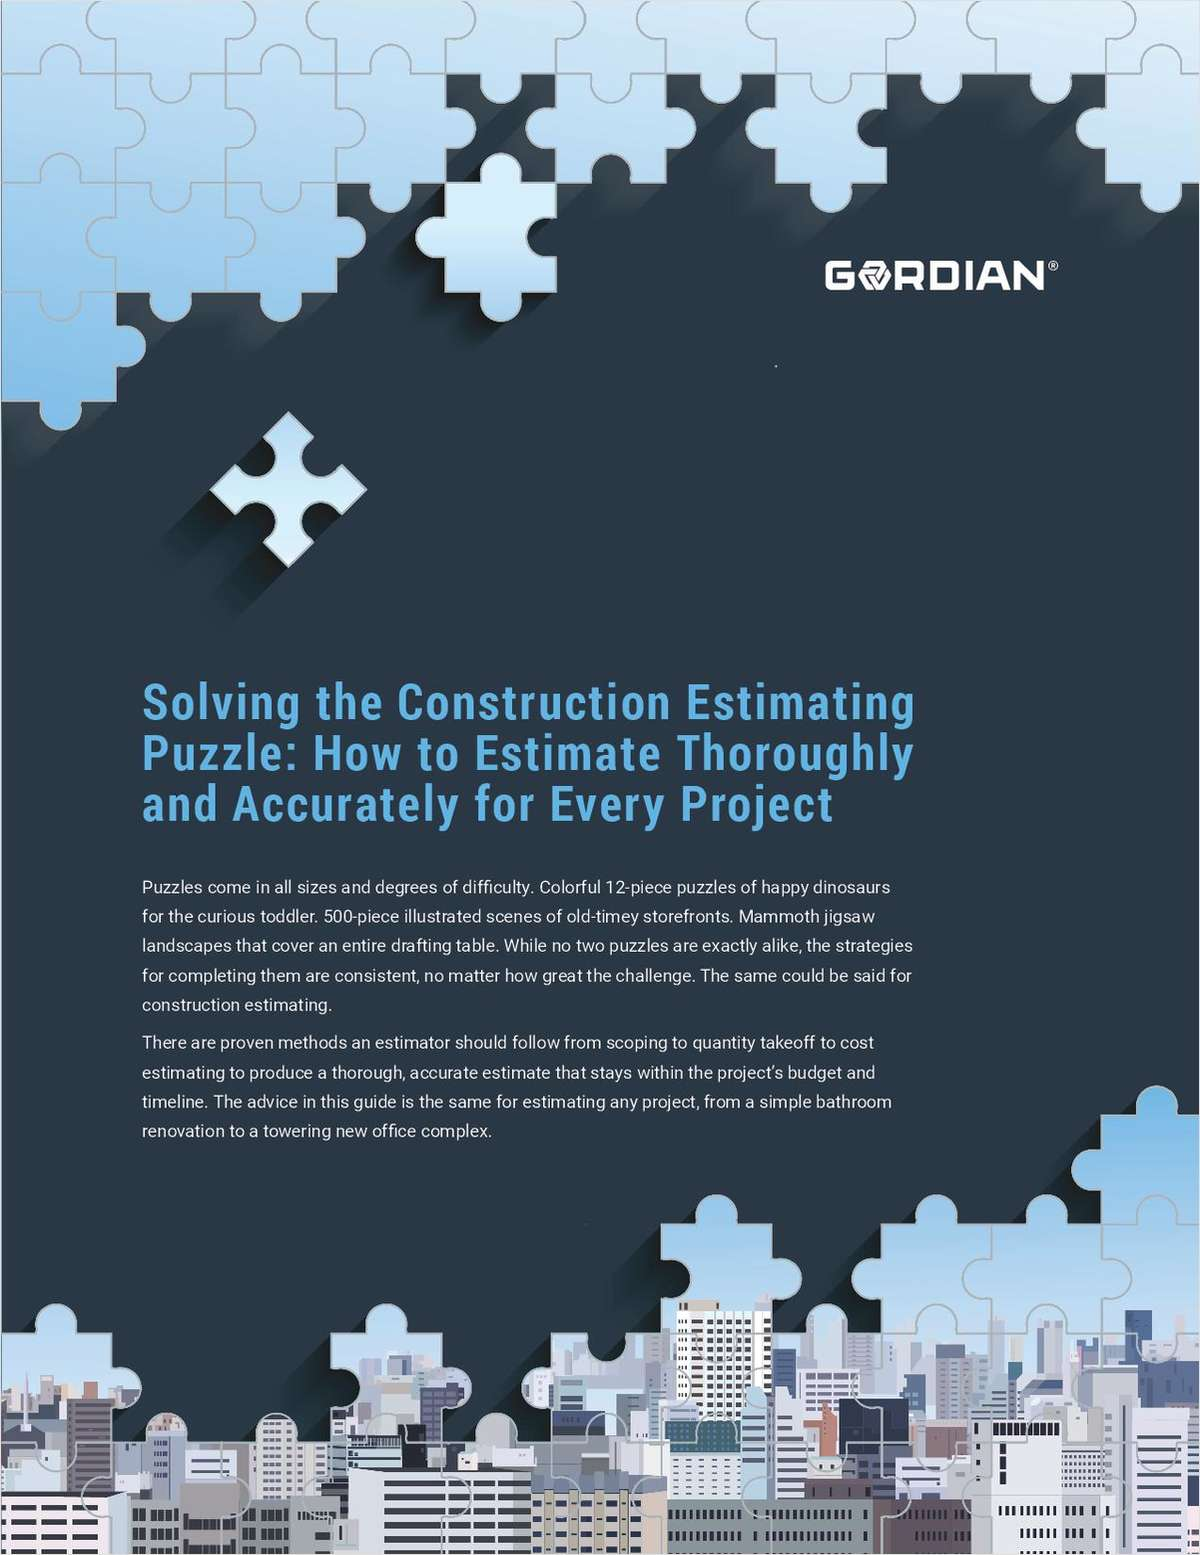 Solving the Construction Estimating Puzzle: How to Estimate Thoroughly and Accurately for Every Project